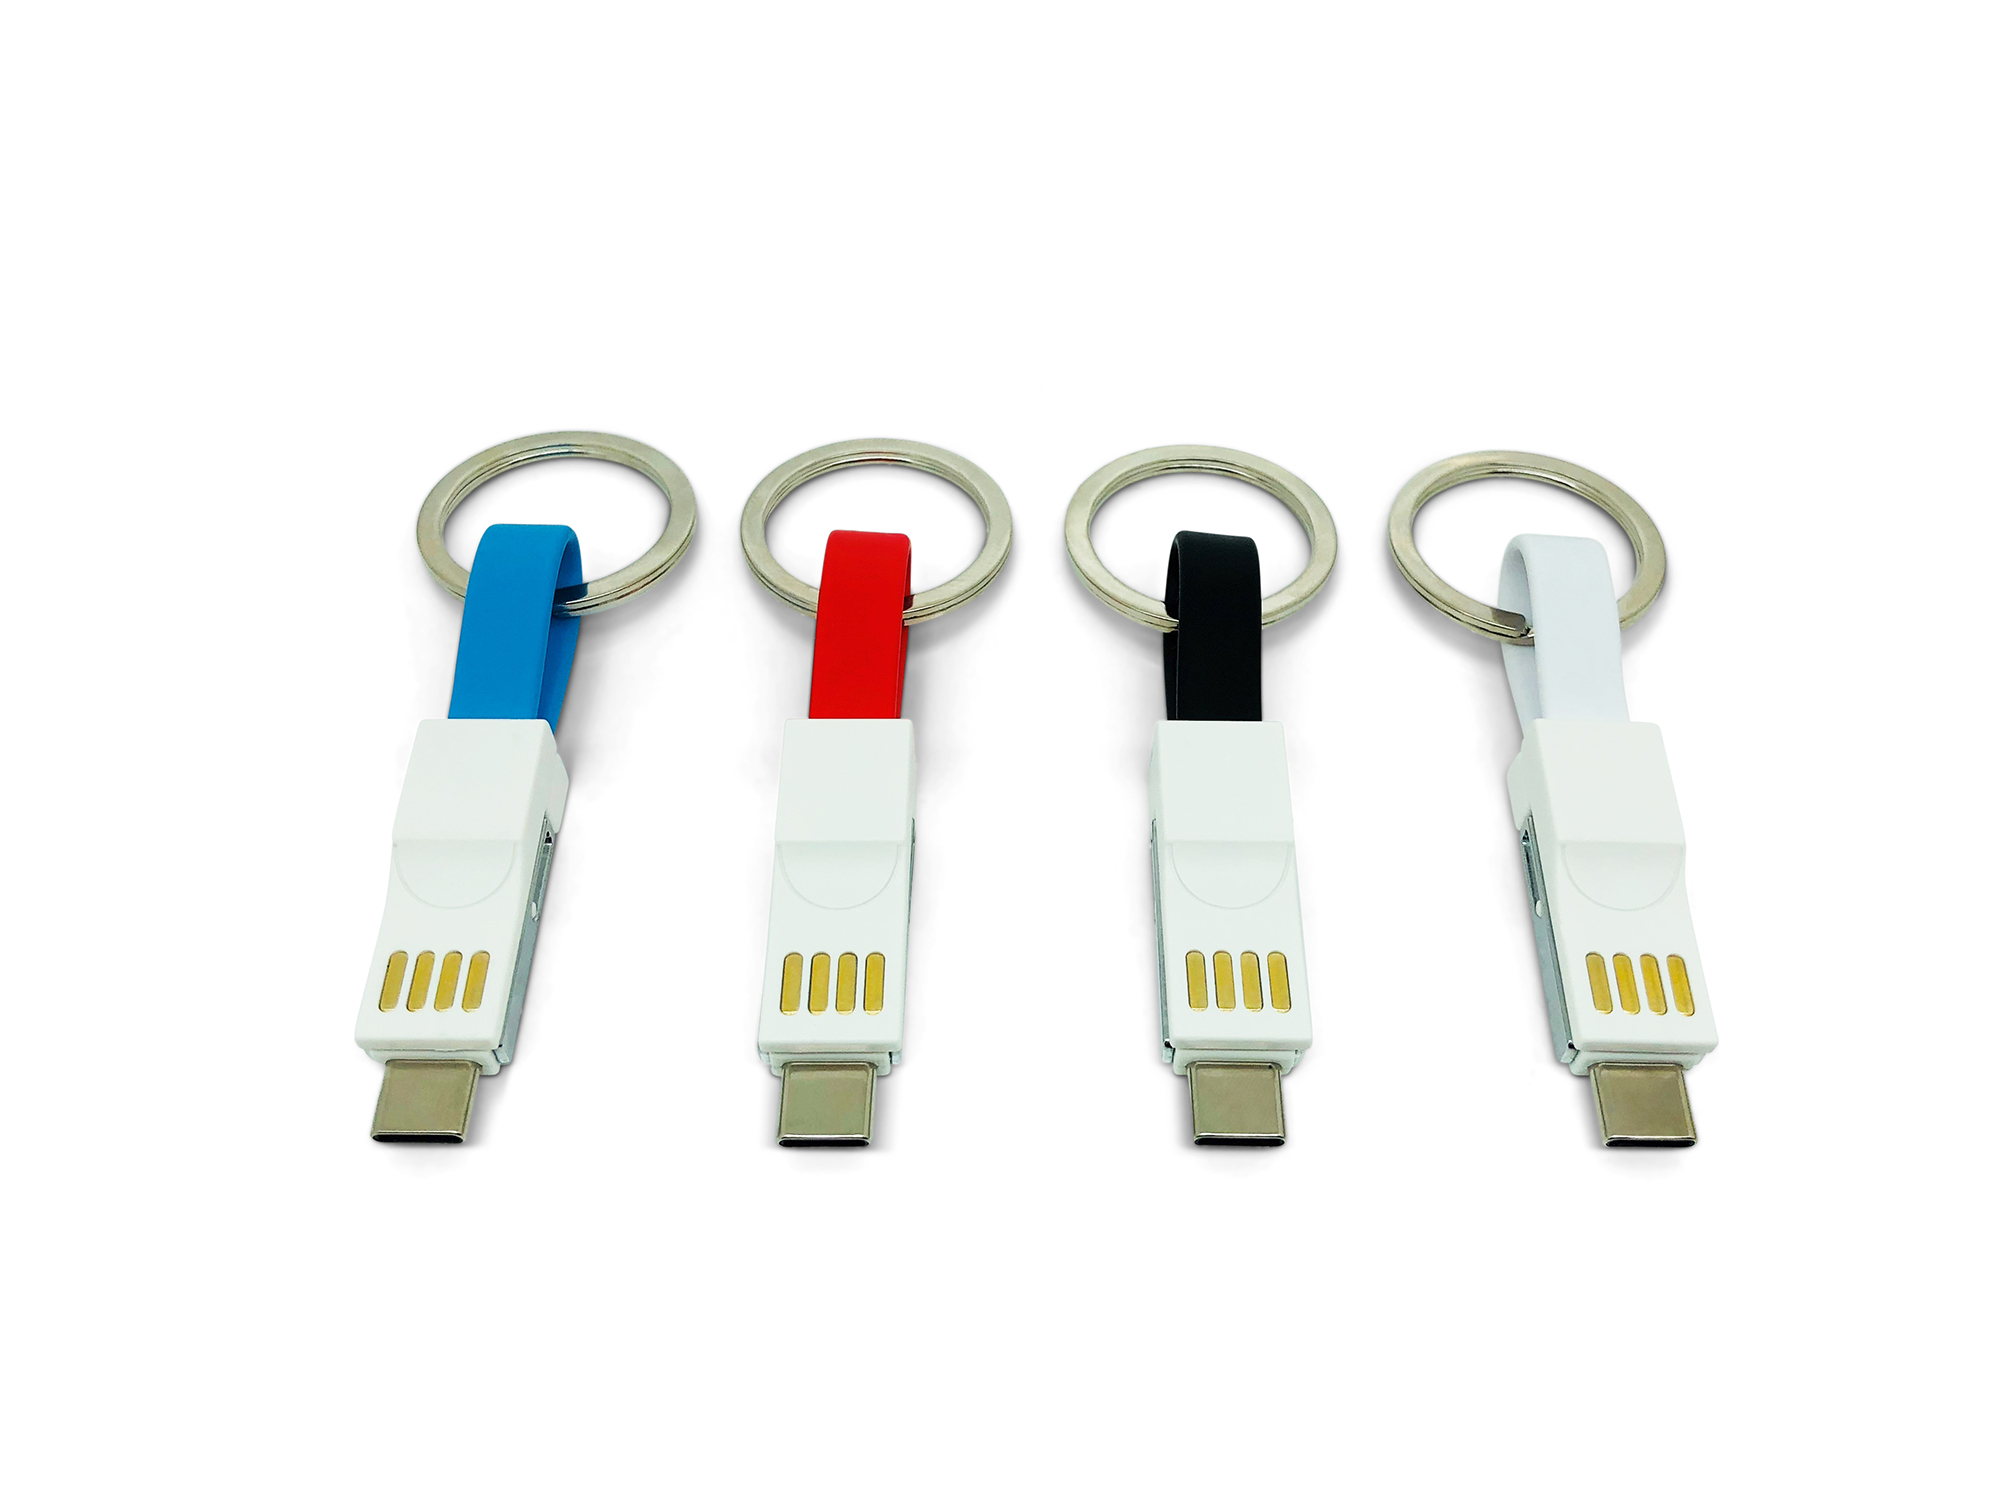 Branded 3-in-1 Keyring Charging Cable